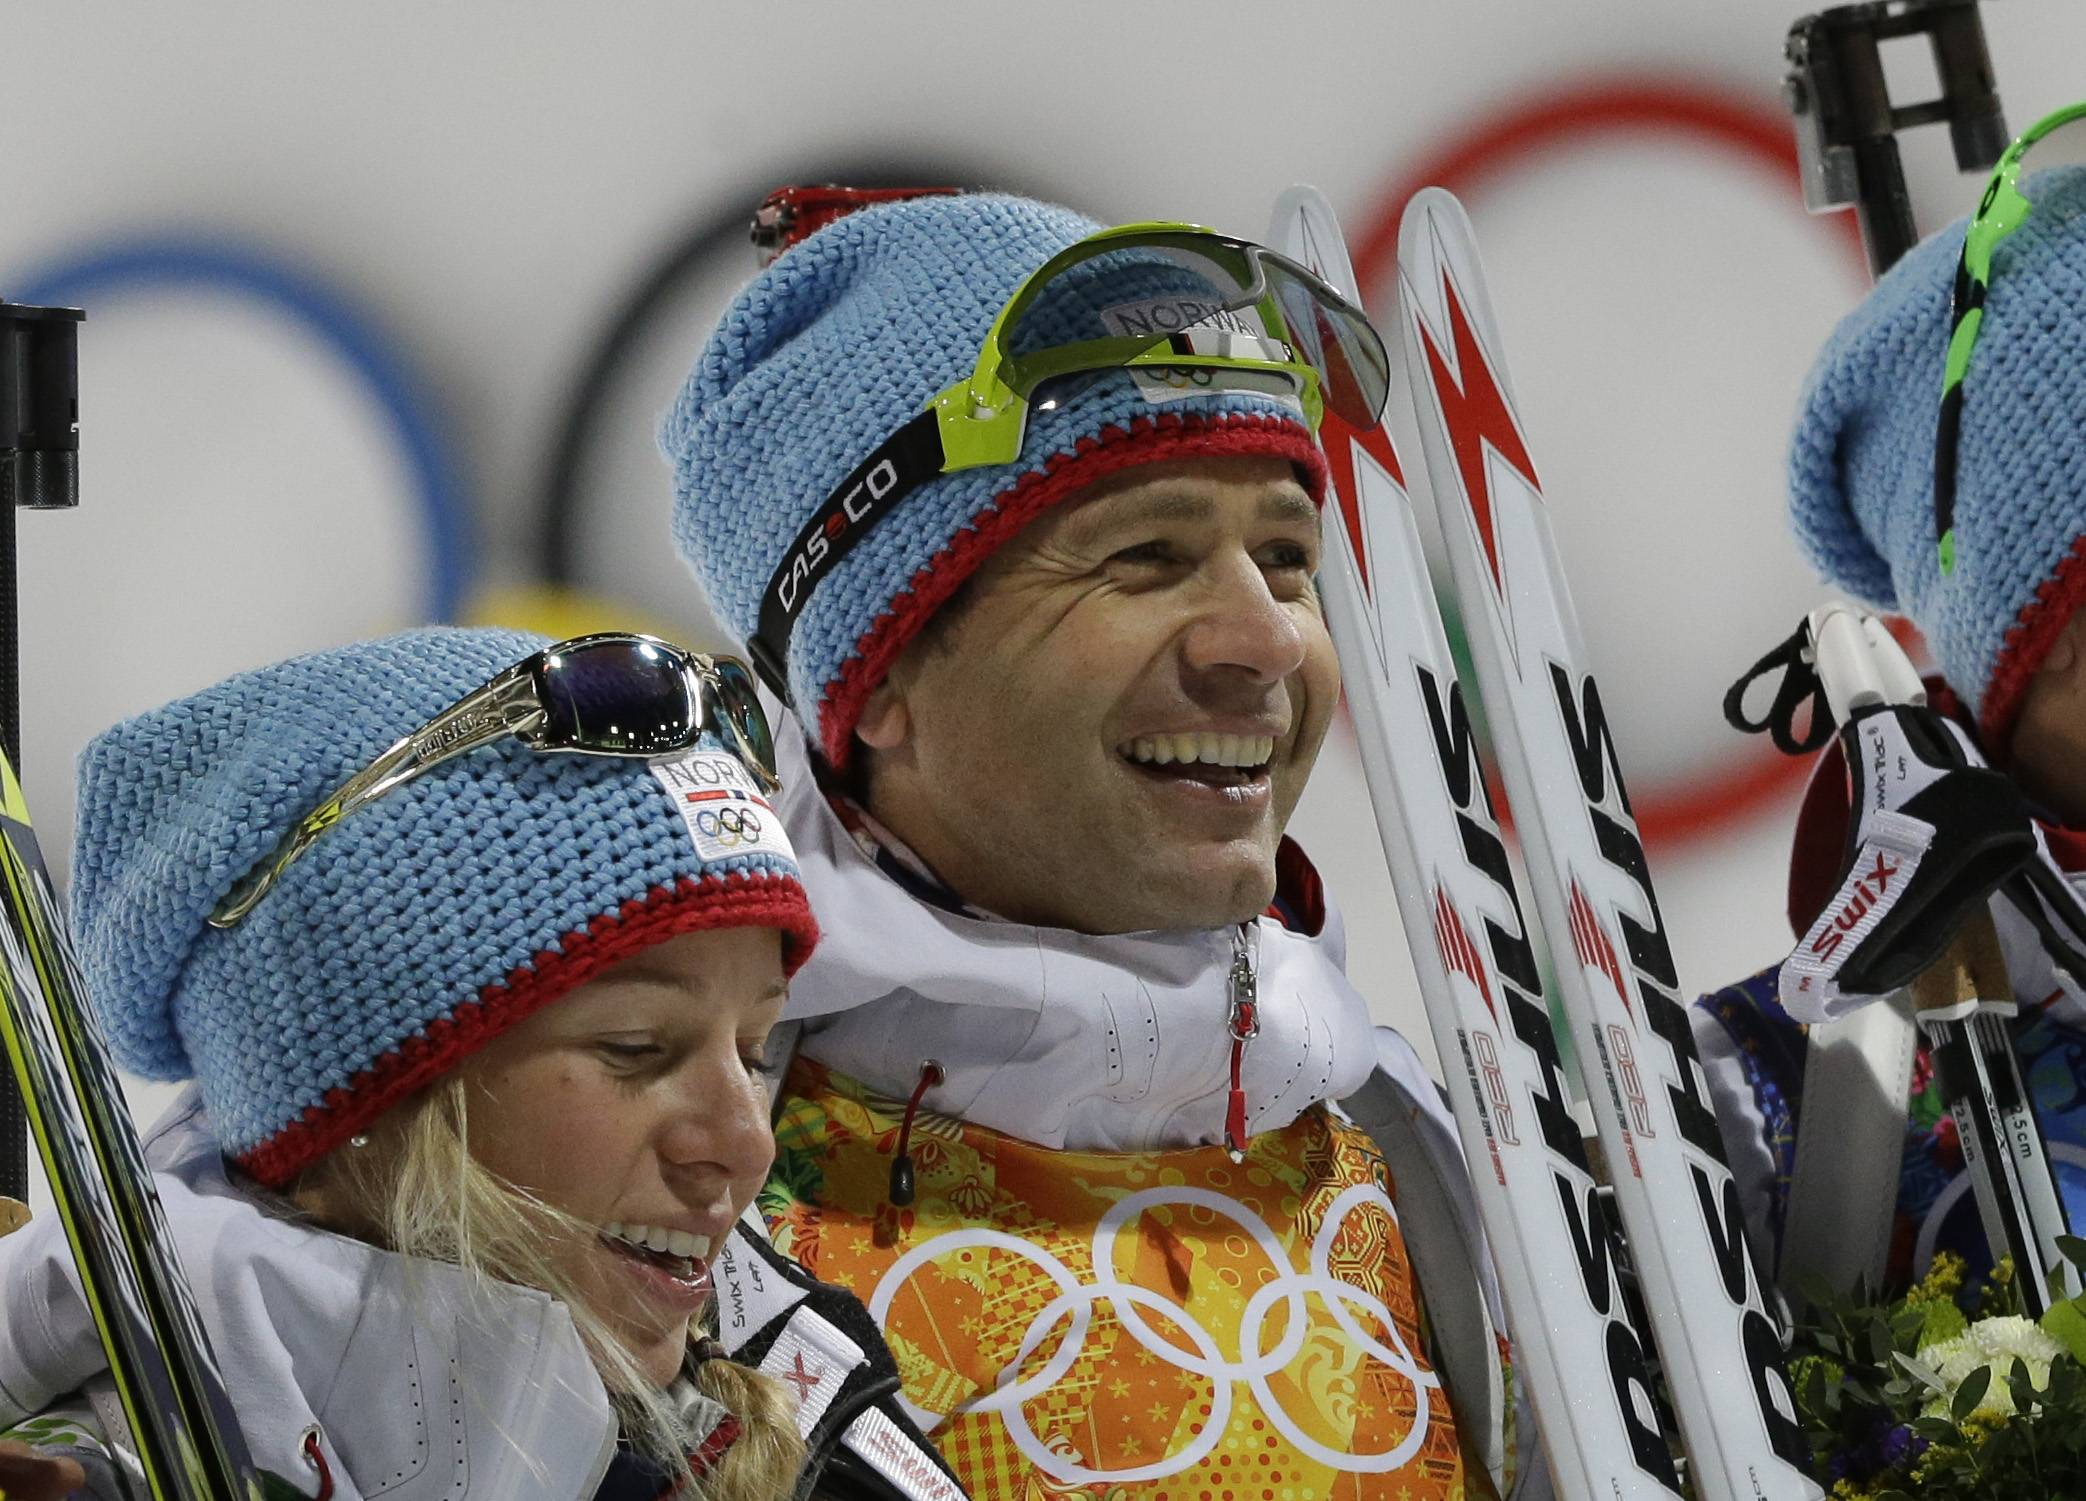 Norway's Ole Einar Bjoerndalen, right, and Tiril Eckhoff smile after winning the gold during the mixed biathlon relay at the 2014 Winter Olympics, Wednesday, Feb. 19, 2014, in Krasnaya Polyana, Russia. The win helped put Norway back atop the medal standings.